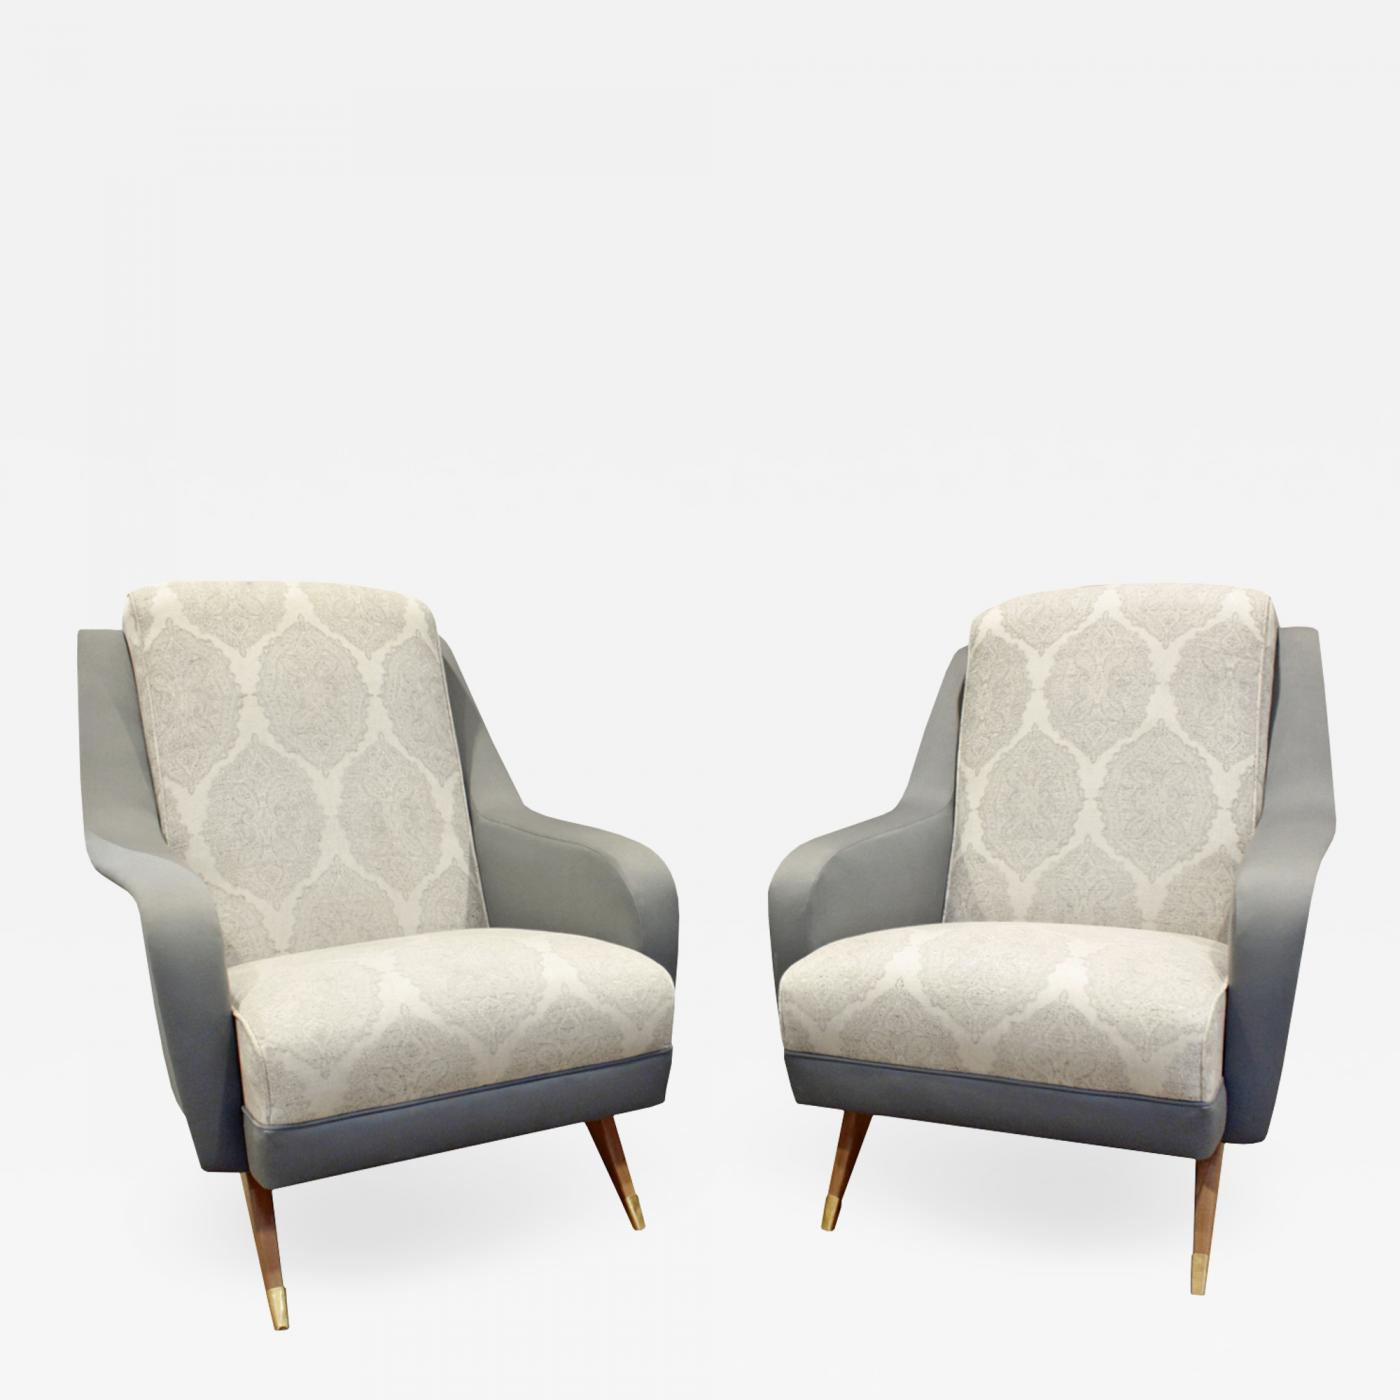 Listings / Furniture / Seating / Lounge Chairs